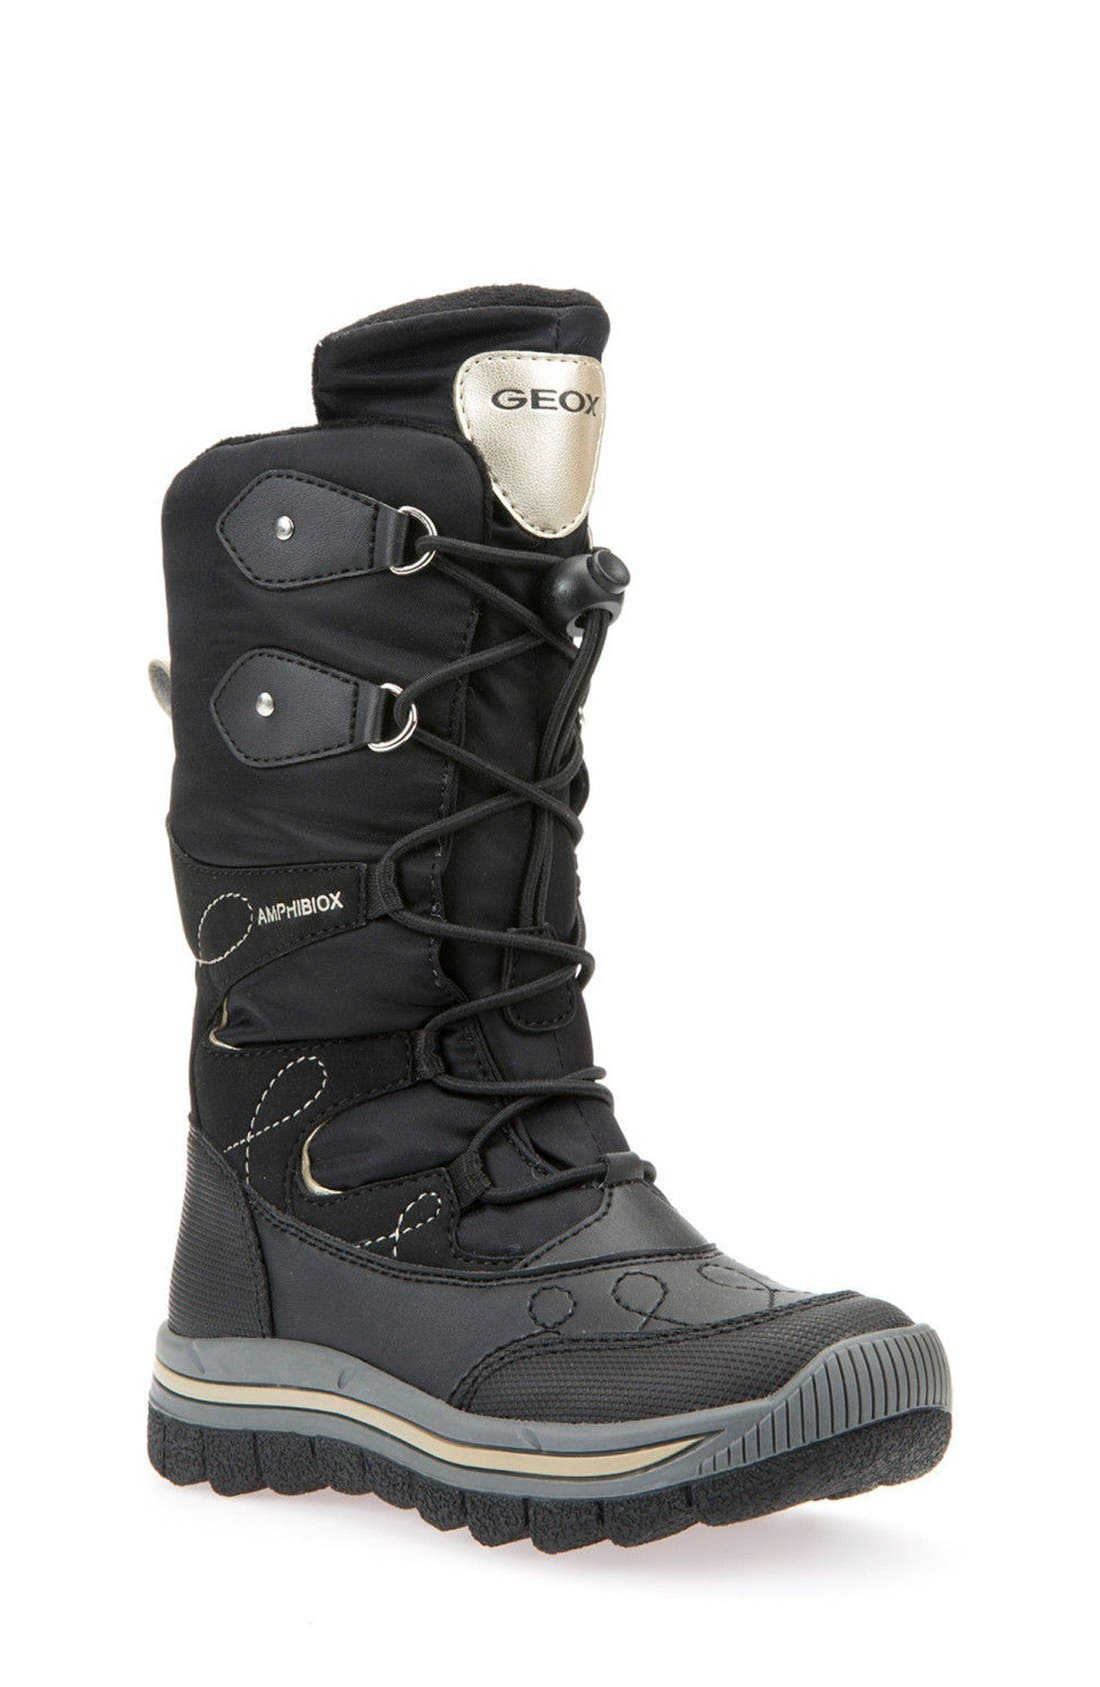 GEOX Overland ABX Waterproof Boot